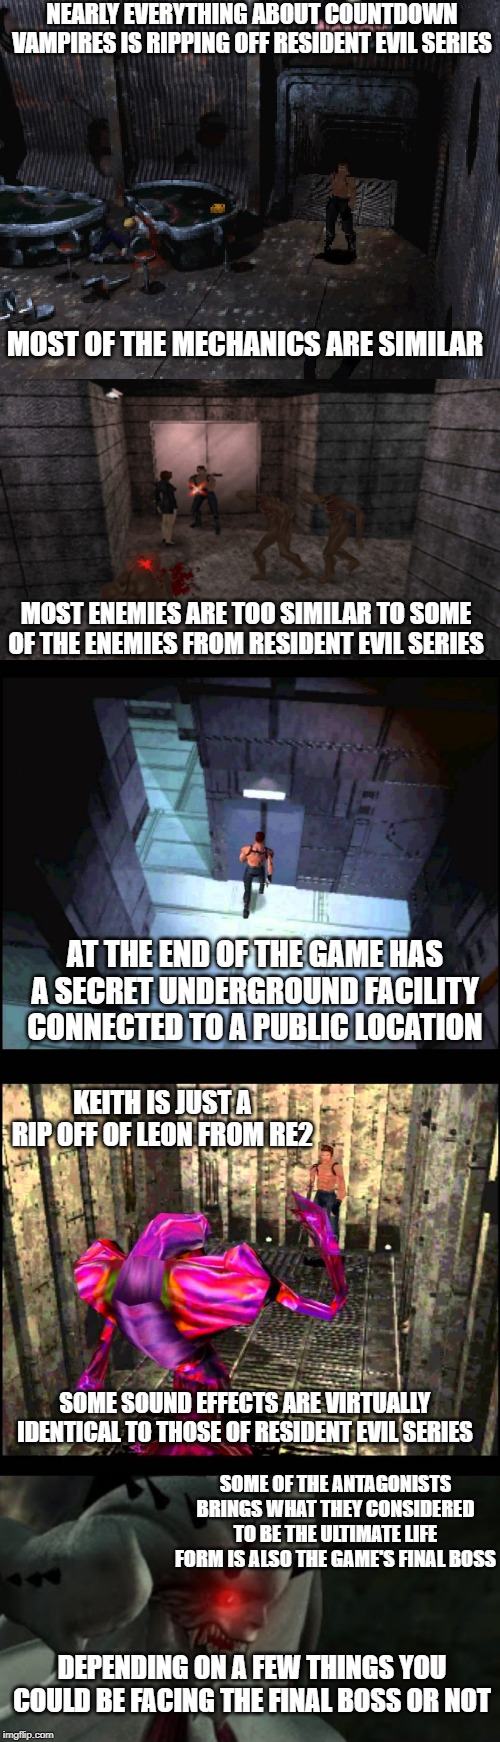 NEARLY EVERYTHING ABOUT COUNTDOWN VAMPIRES IS RIPPING OFF RESIDENT EVIL SERIES; MOST OF THE MECHANICS ARE SIMILAR; MOST ENEMIES ARE TOO SIMILAR TO SOME OF THE ENEMIES FROM RESIDENT EVIL SERIES; AT THE END OF THE GAME HAS A SECRET UNDERGROUND FACILITY CONNECTED TO A PUBLIC LOCATION; KEITH IS JUST A RIP OFF OF LEON FROM RE2; SOME SOUND EFFECTS ARE VIRTUALLY IDENTICAL TO THOSE OF RESIDENT EVIL SERIES; SOME OF THE ANTAGONISTS BRINGS WHAT THEY CONSIDERED TO BE THE ULTIMATE LIFE FORM IS ALSO THE GAME'S FINAL BOSS; DEPENDING ON A FEW THINGS YOU COULD BE FACING THE FINAL BOSS OR NOT | image tagged in resident evil,vampires,rip off,horror | made w/ Imgflip meme maker